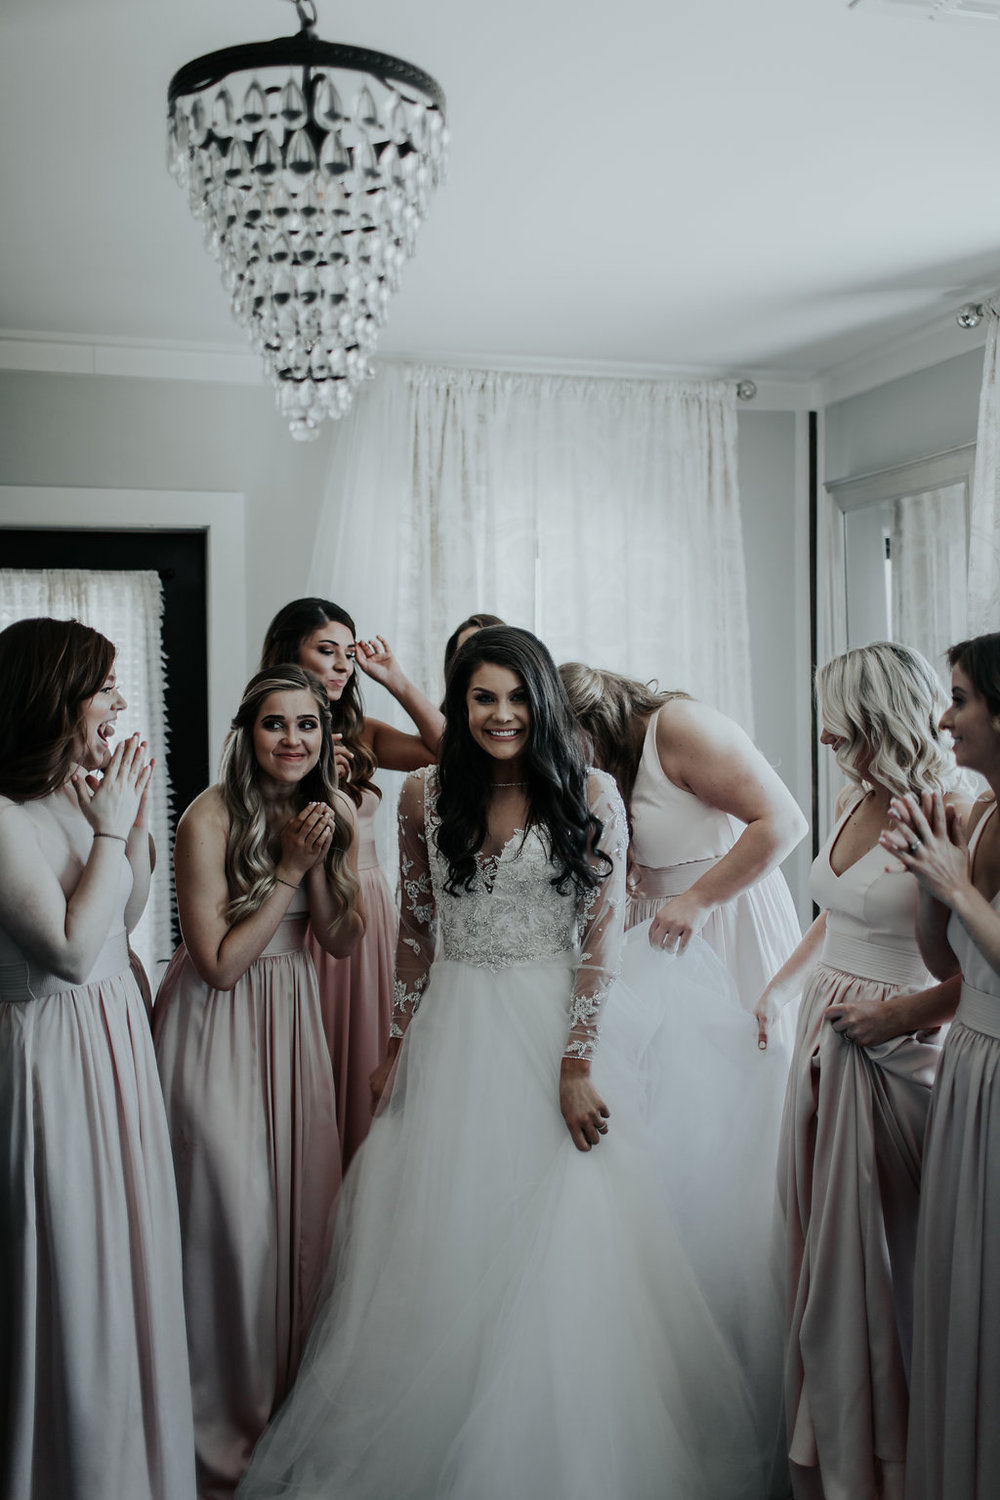 Tulsa Wedding Venue brides room with bridesmaids 1.jpg